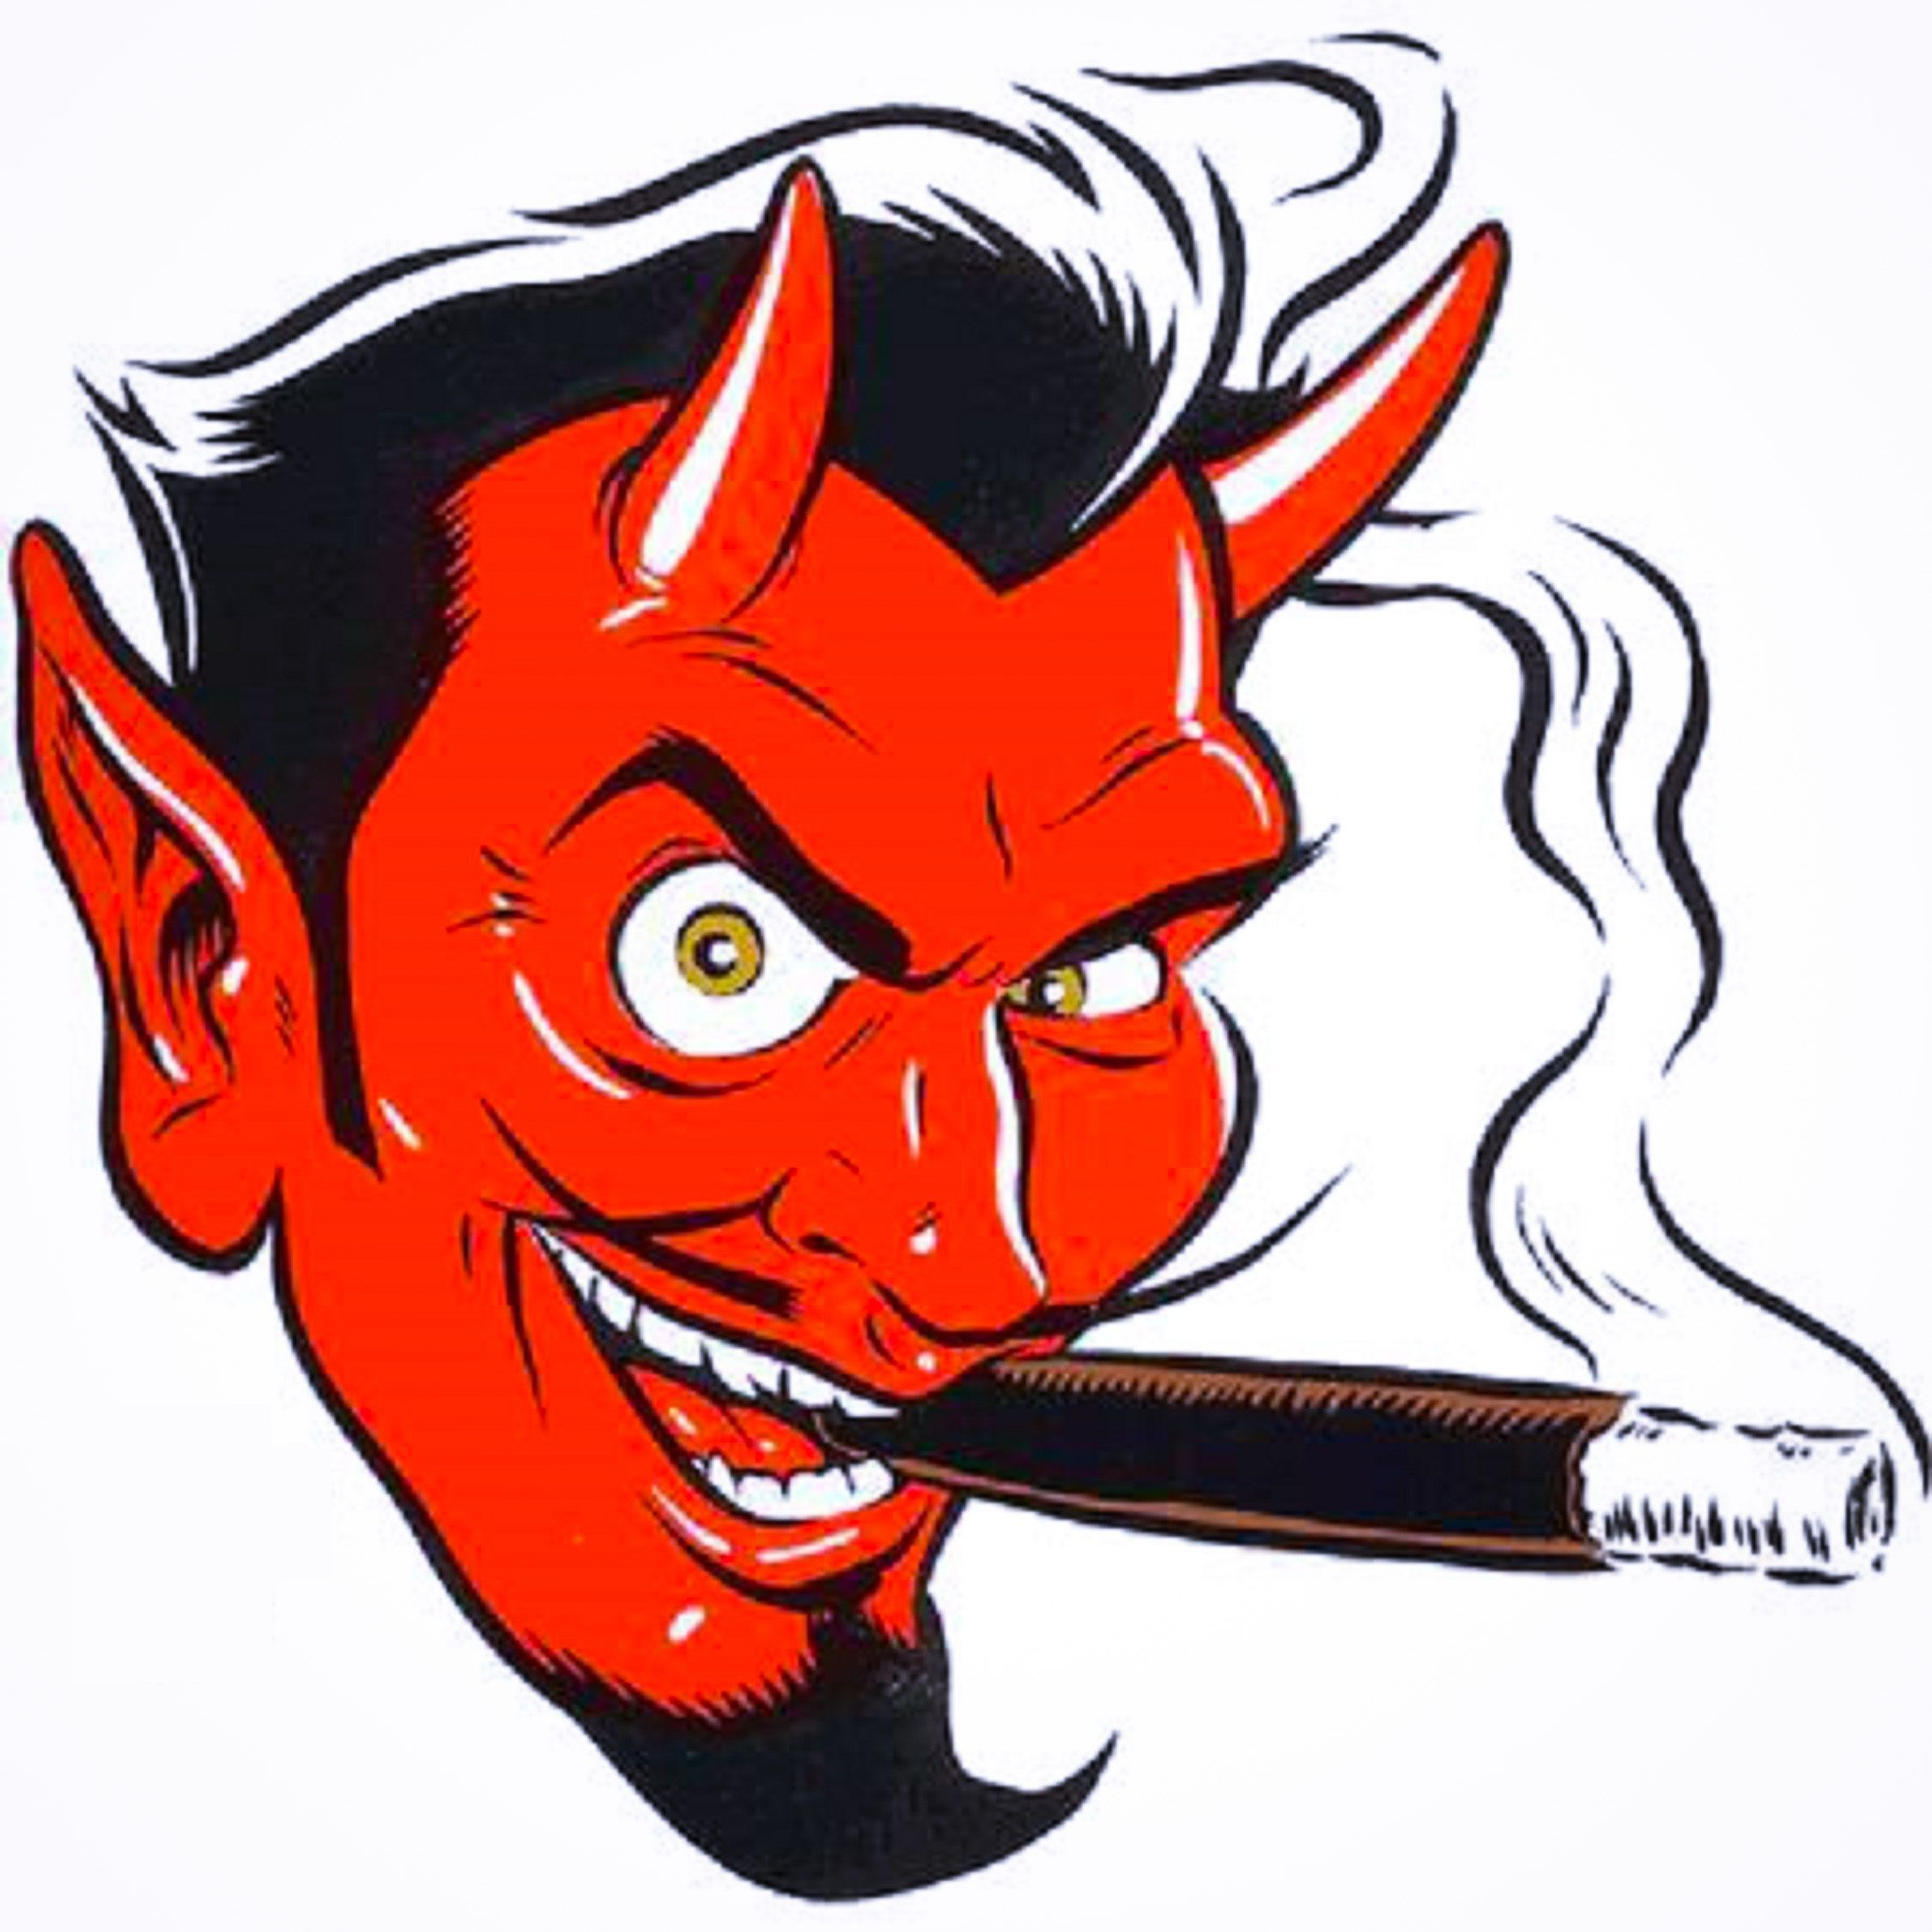 Cigar devil clipart image royalty free download Devil\'s Face with Cigar   Brushes & Booze idea board   Devil tattoo ... image royalty free download